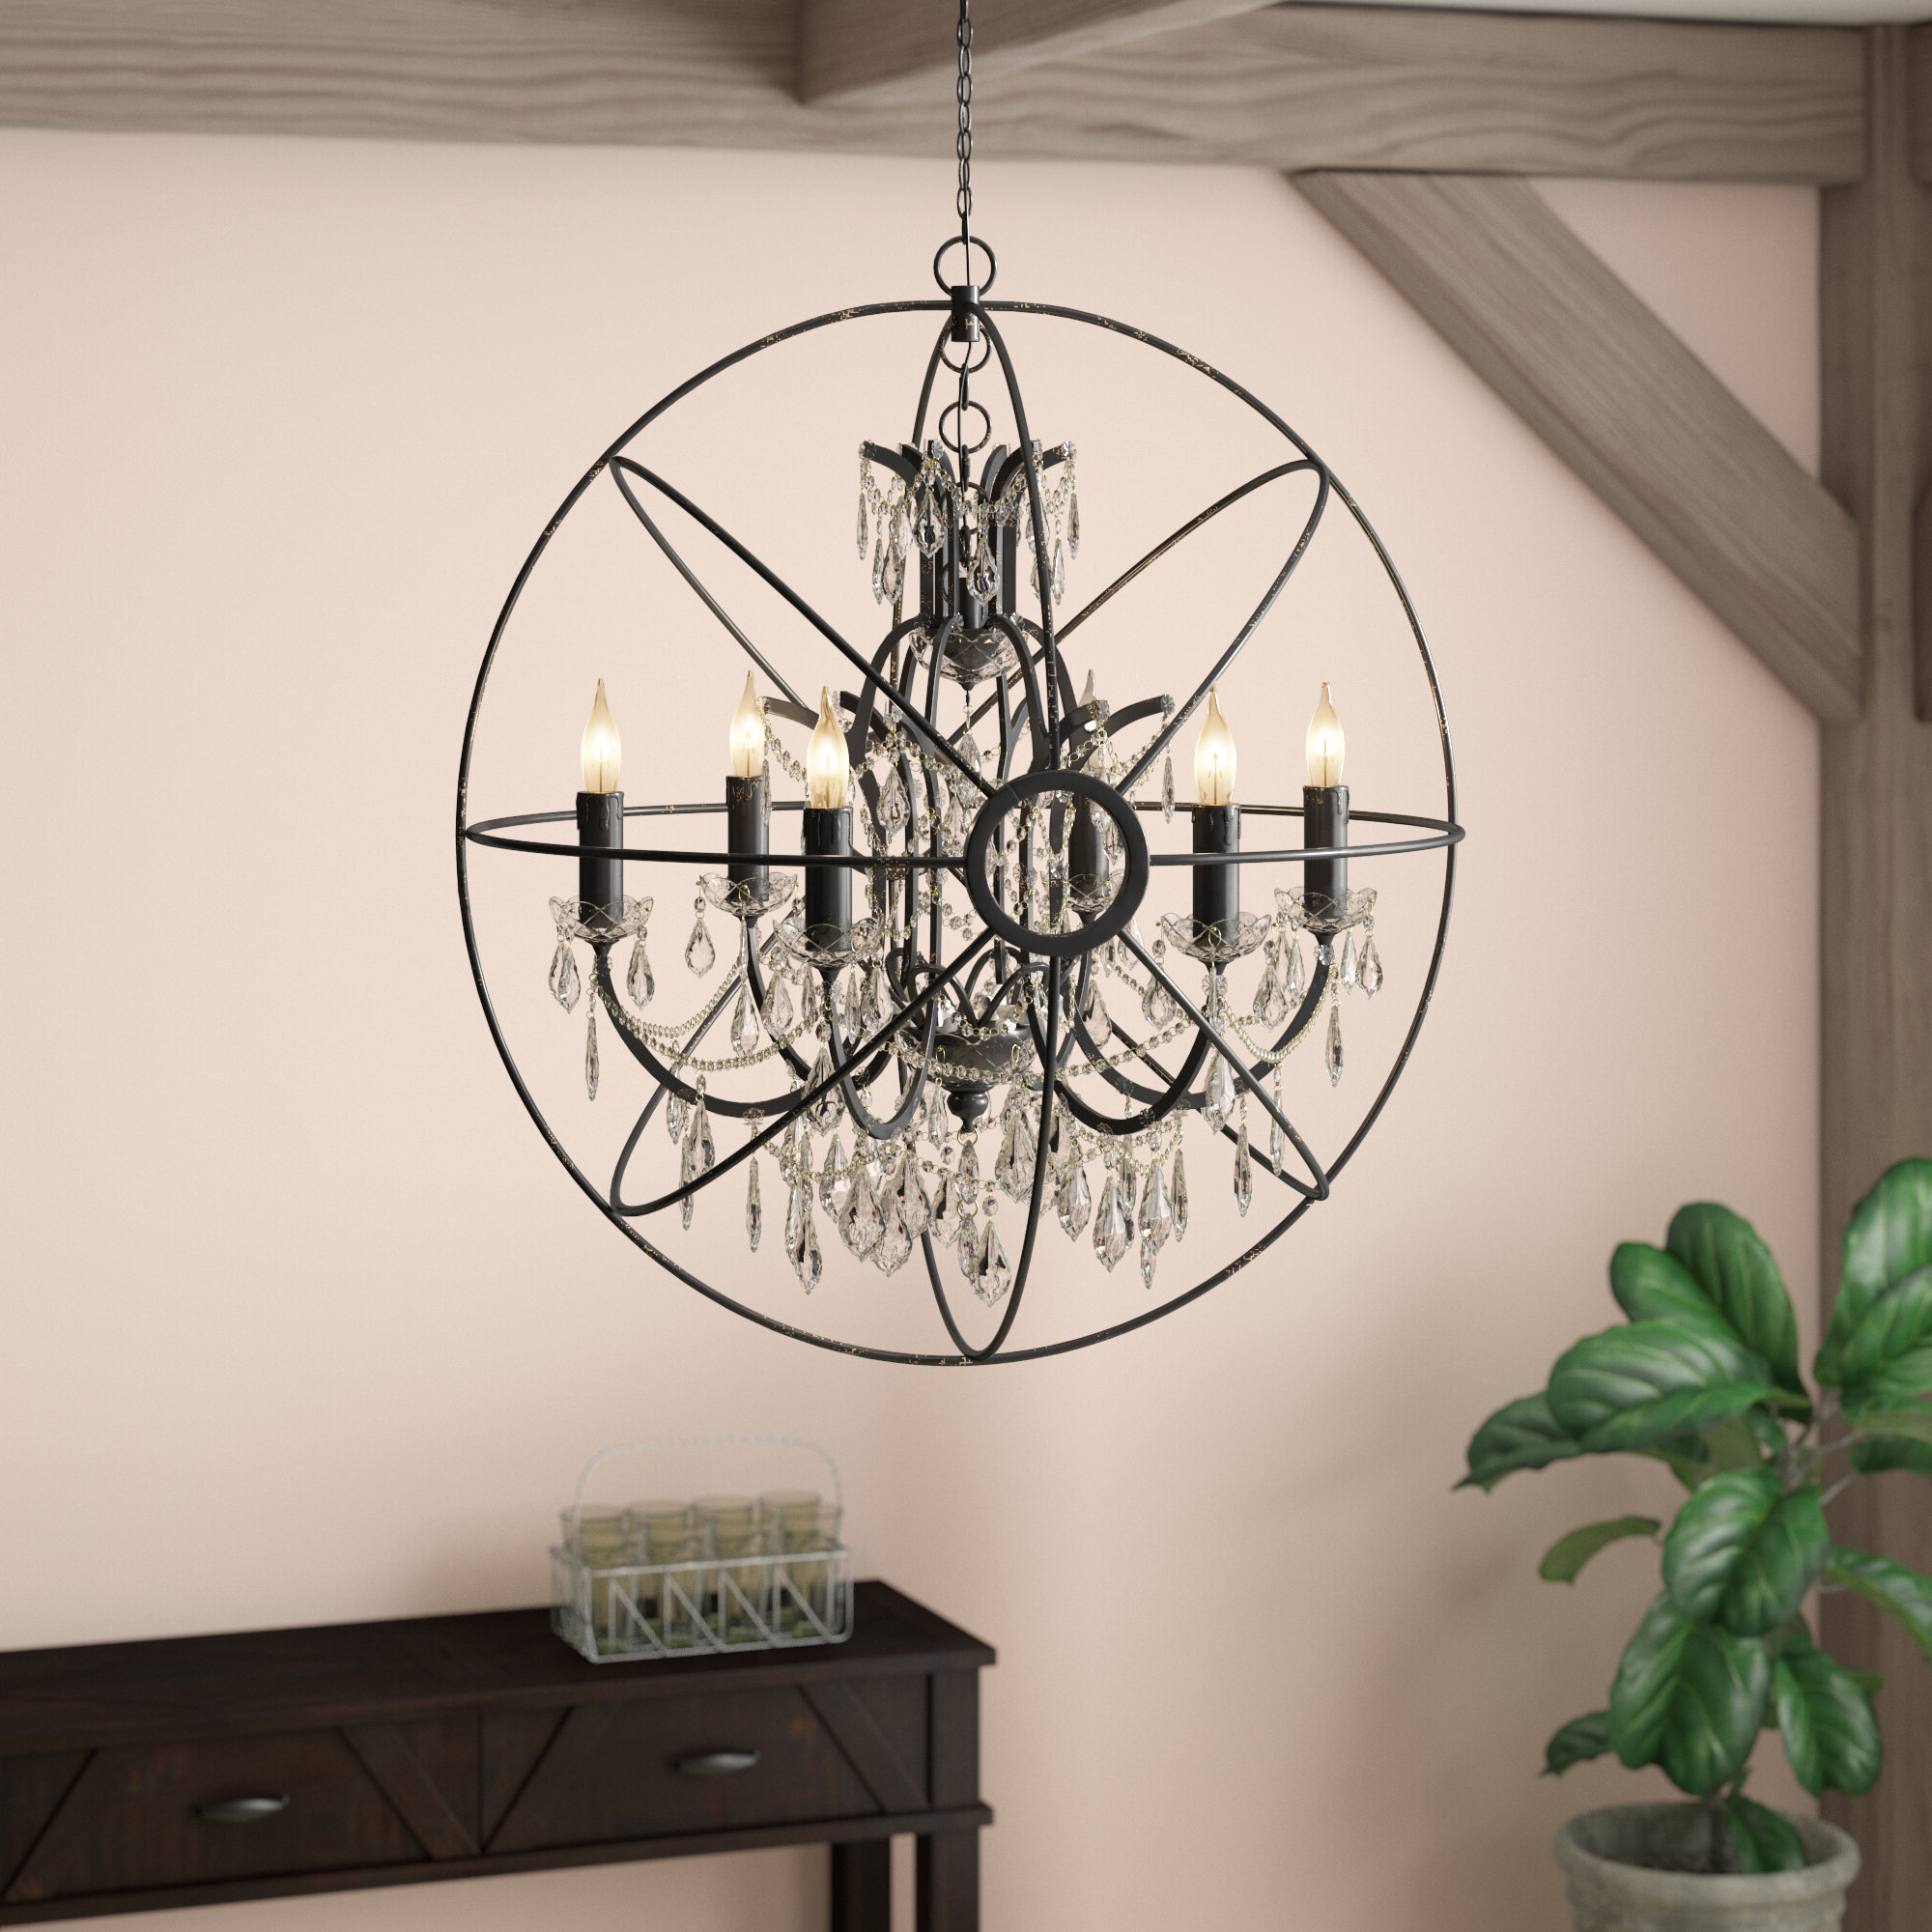 Trendy Alden 6 Light Globe Chandeliers Regarding Cearbhall 6 Light Globe Chandelier (View 19 of 25)